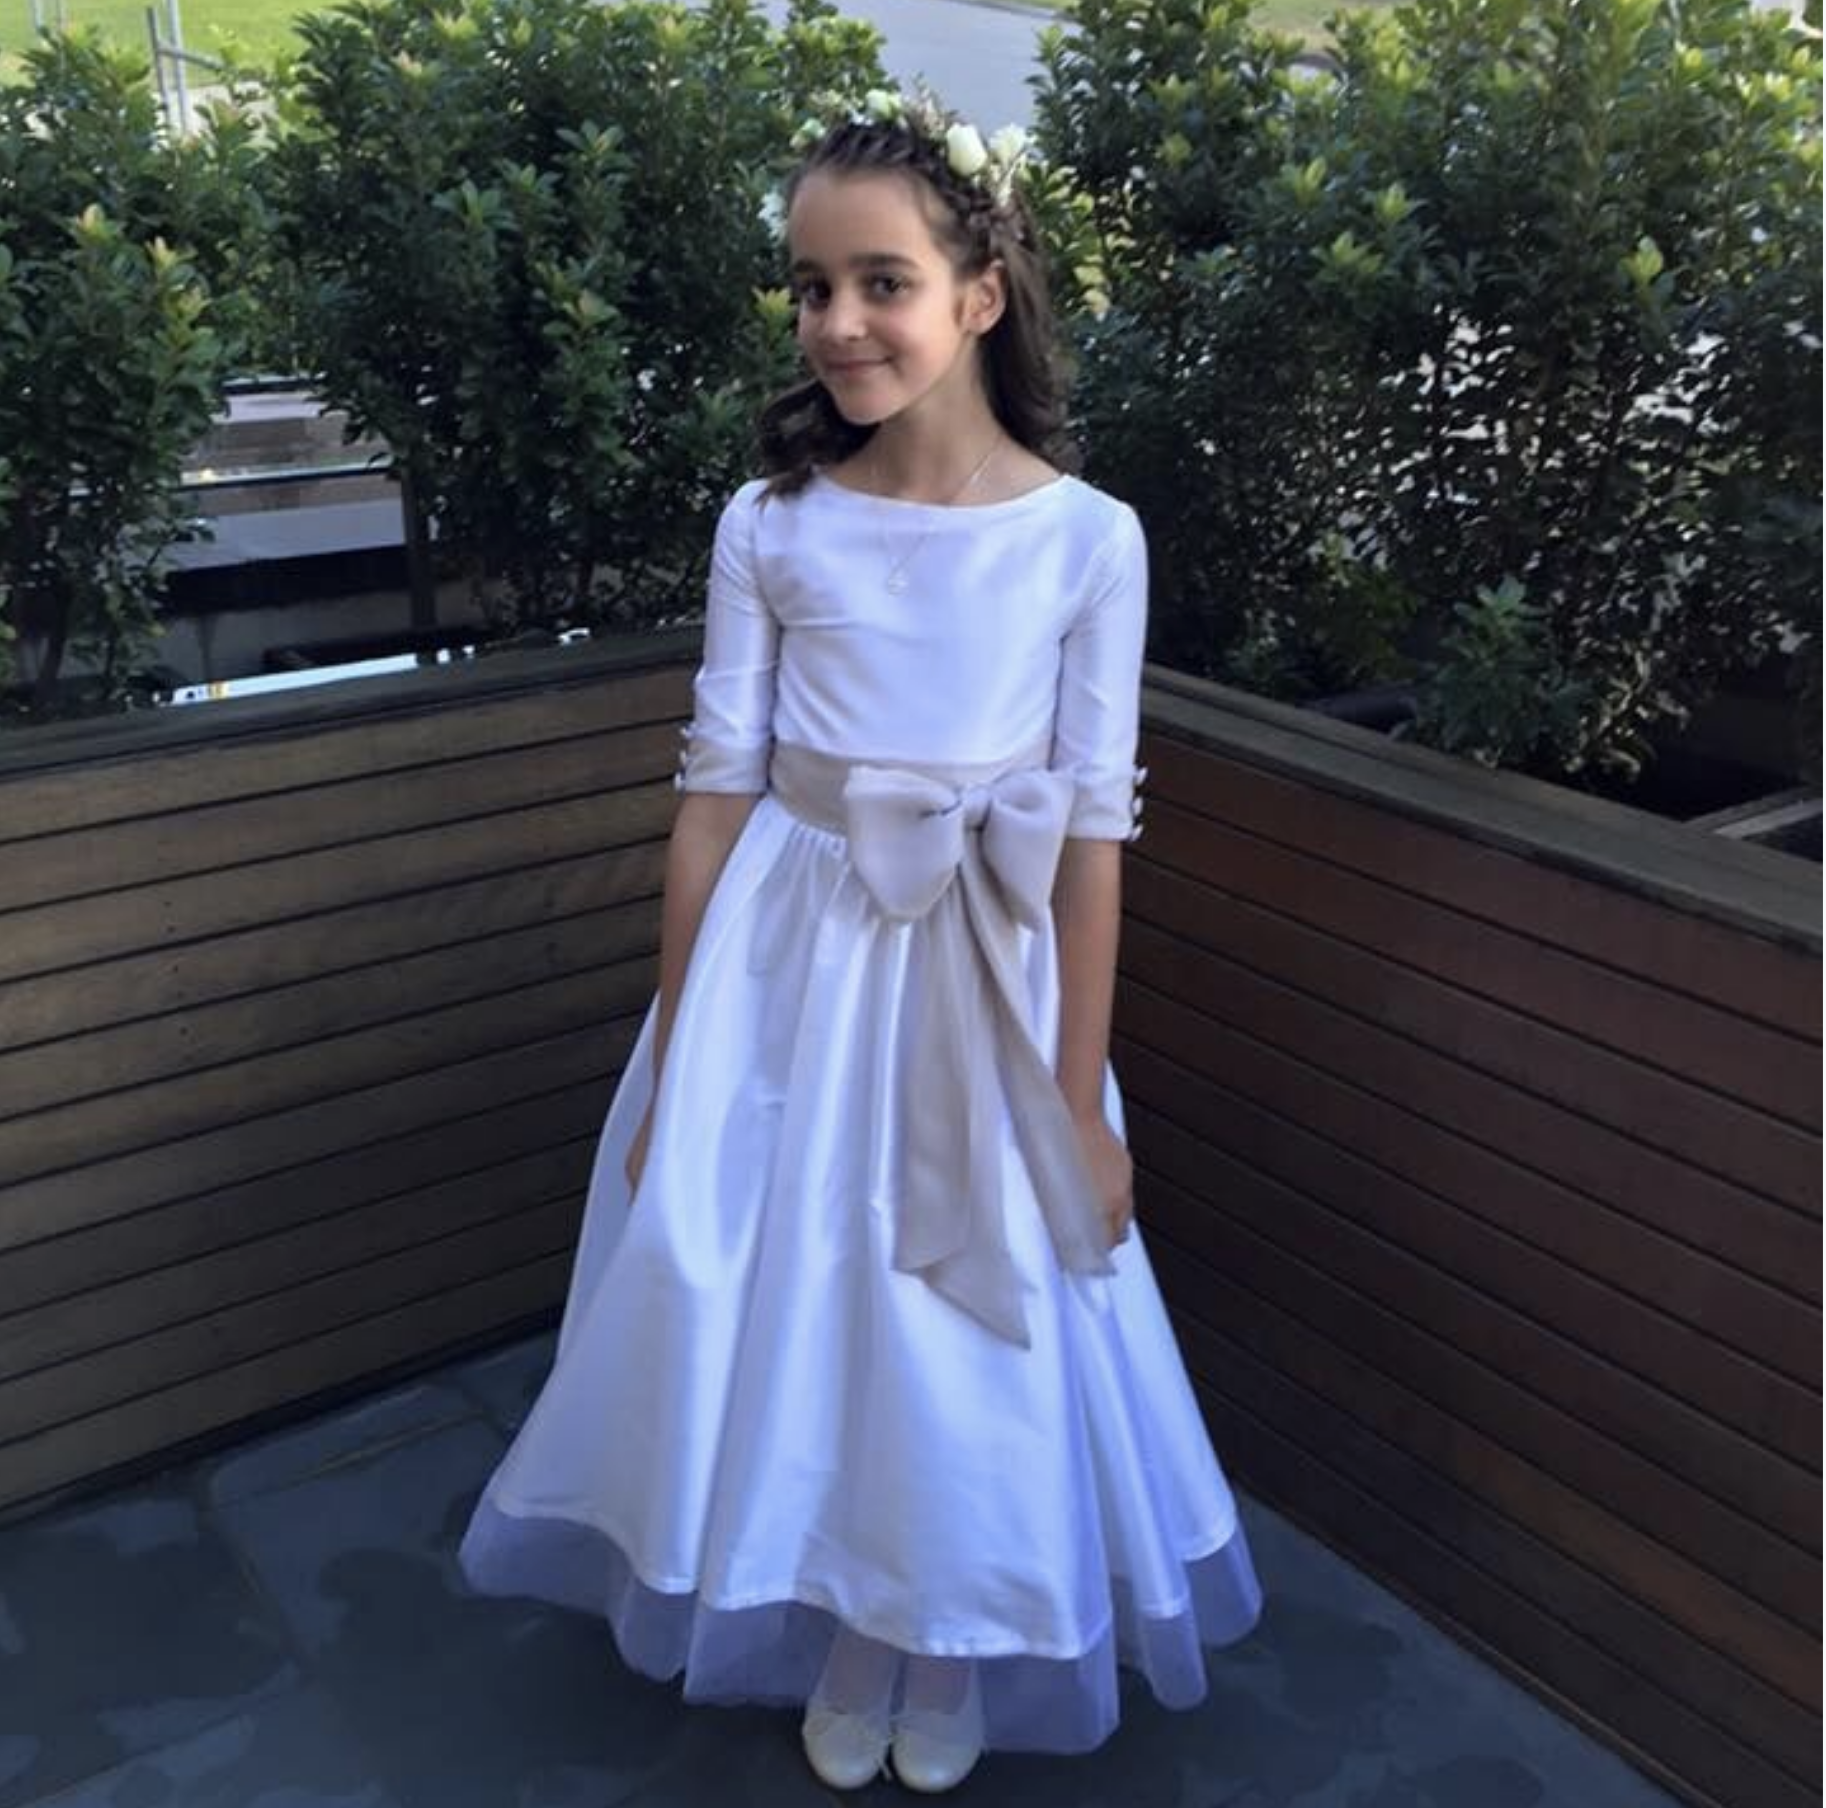 Linda Farnale's daughter Holy communion dress.